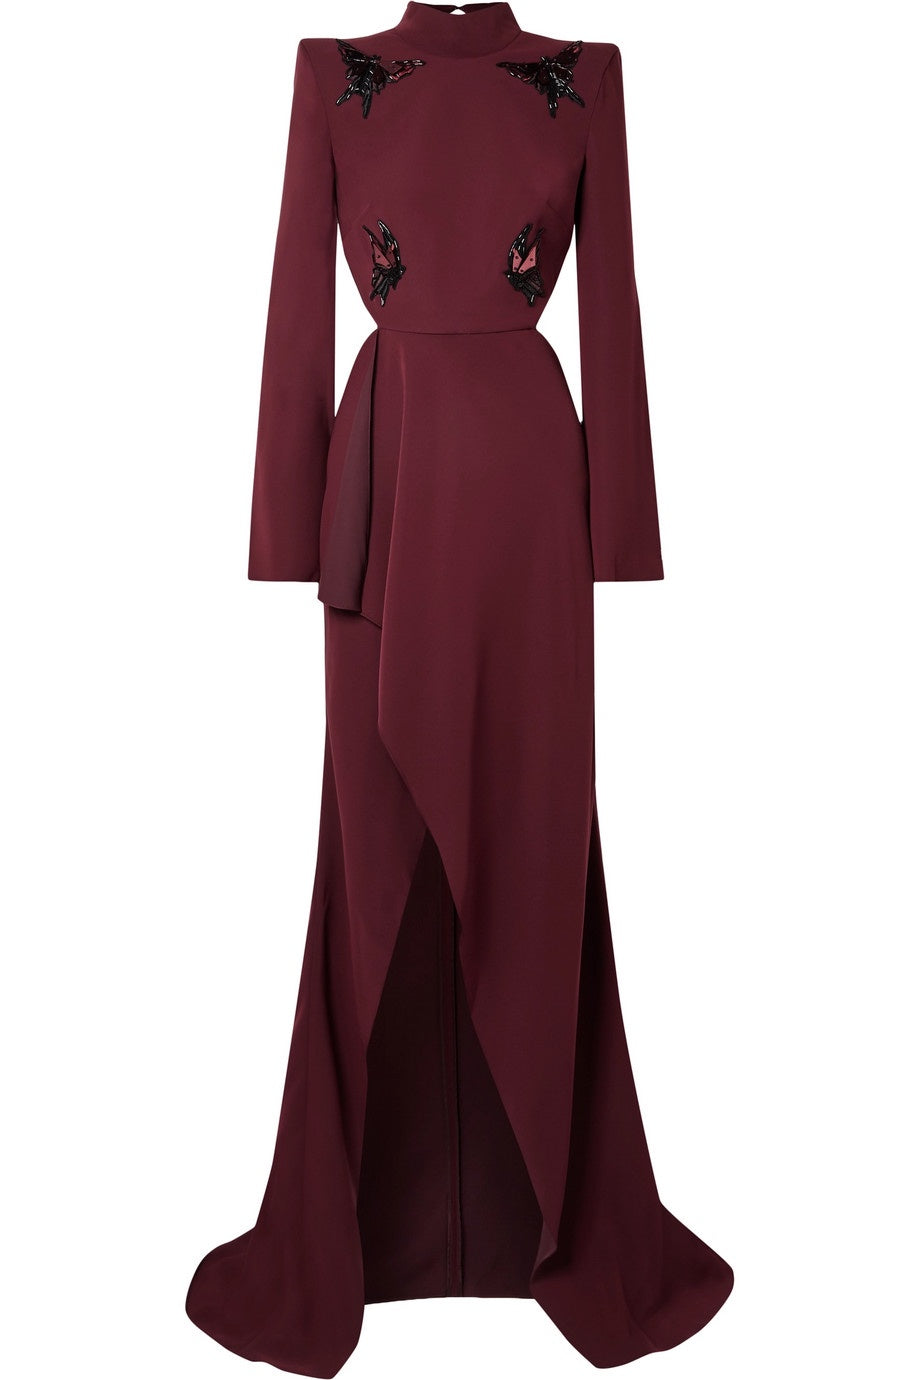 Mugler Embroidered Women Burgundy Gown